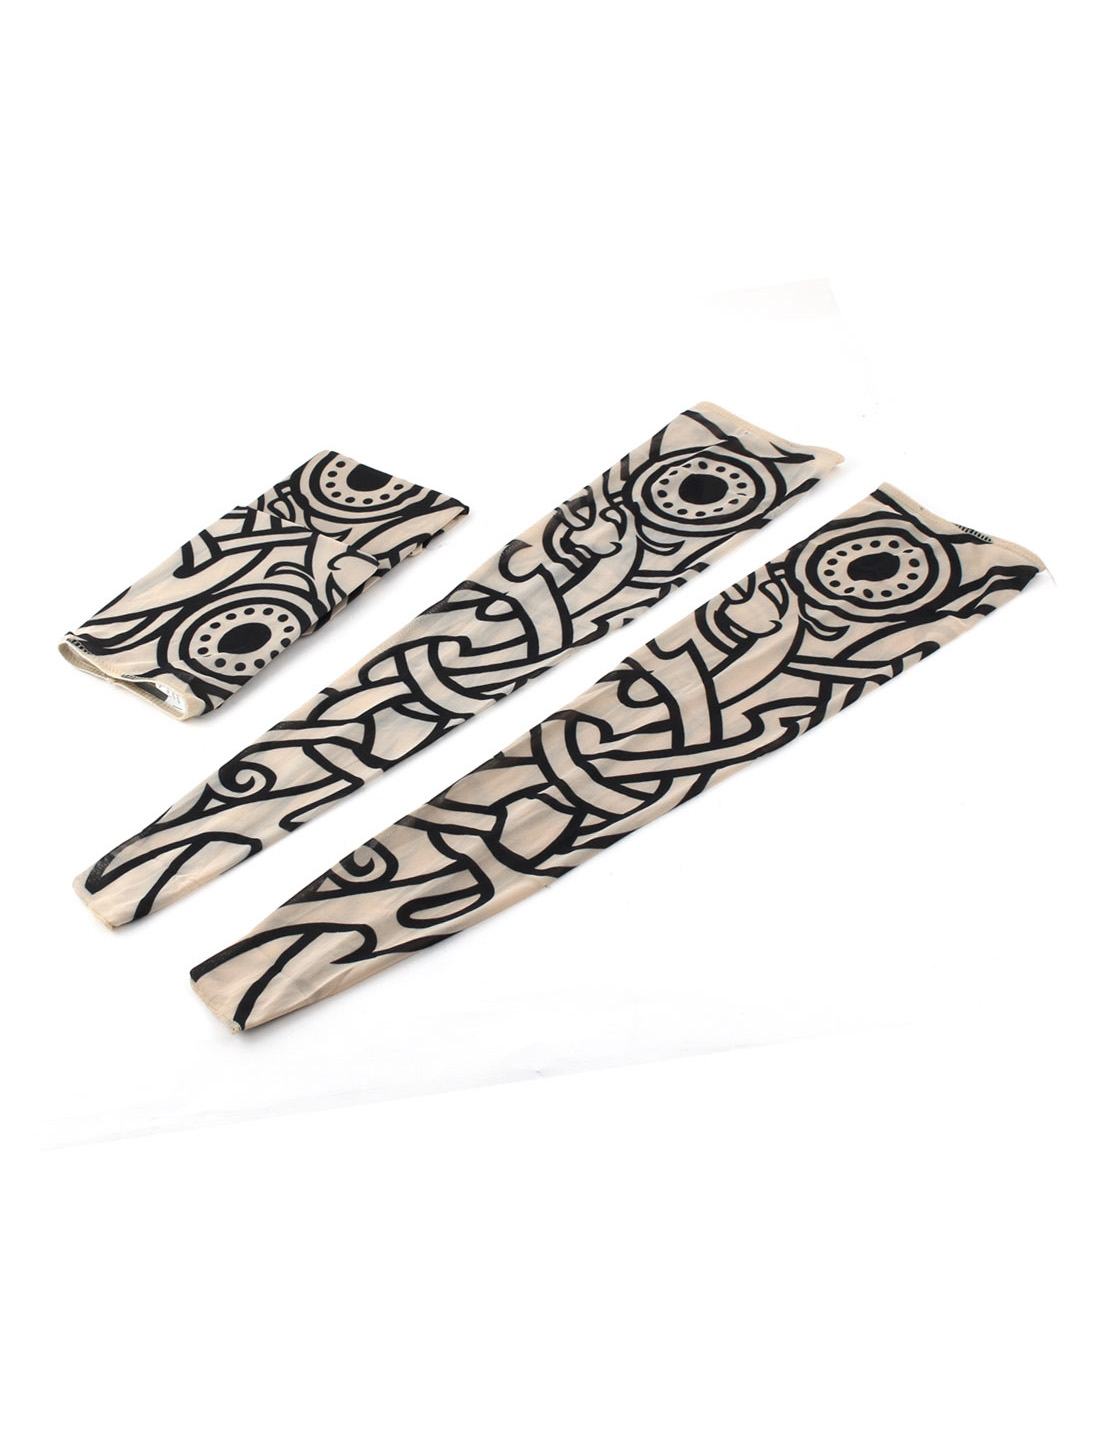 Outdoor Nylon Elastic Fake Body Art Tattoo Sleeves Arm Stockings Protector 2 Pairs